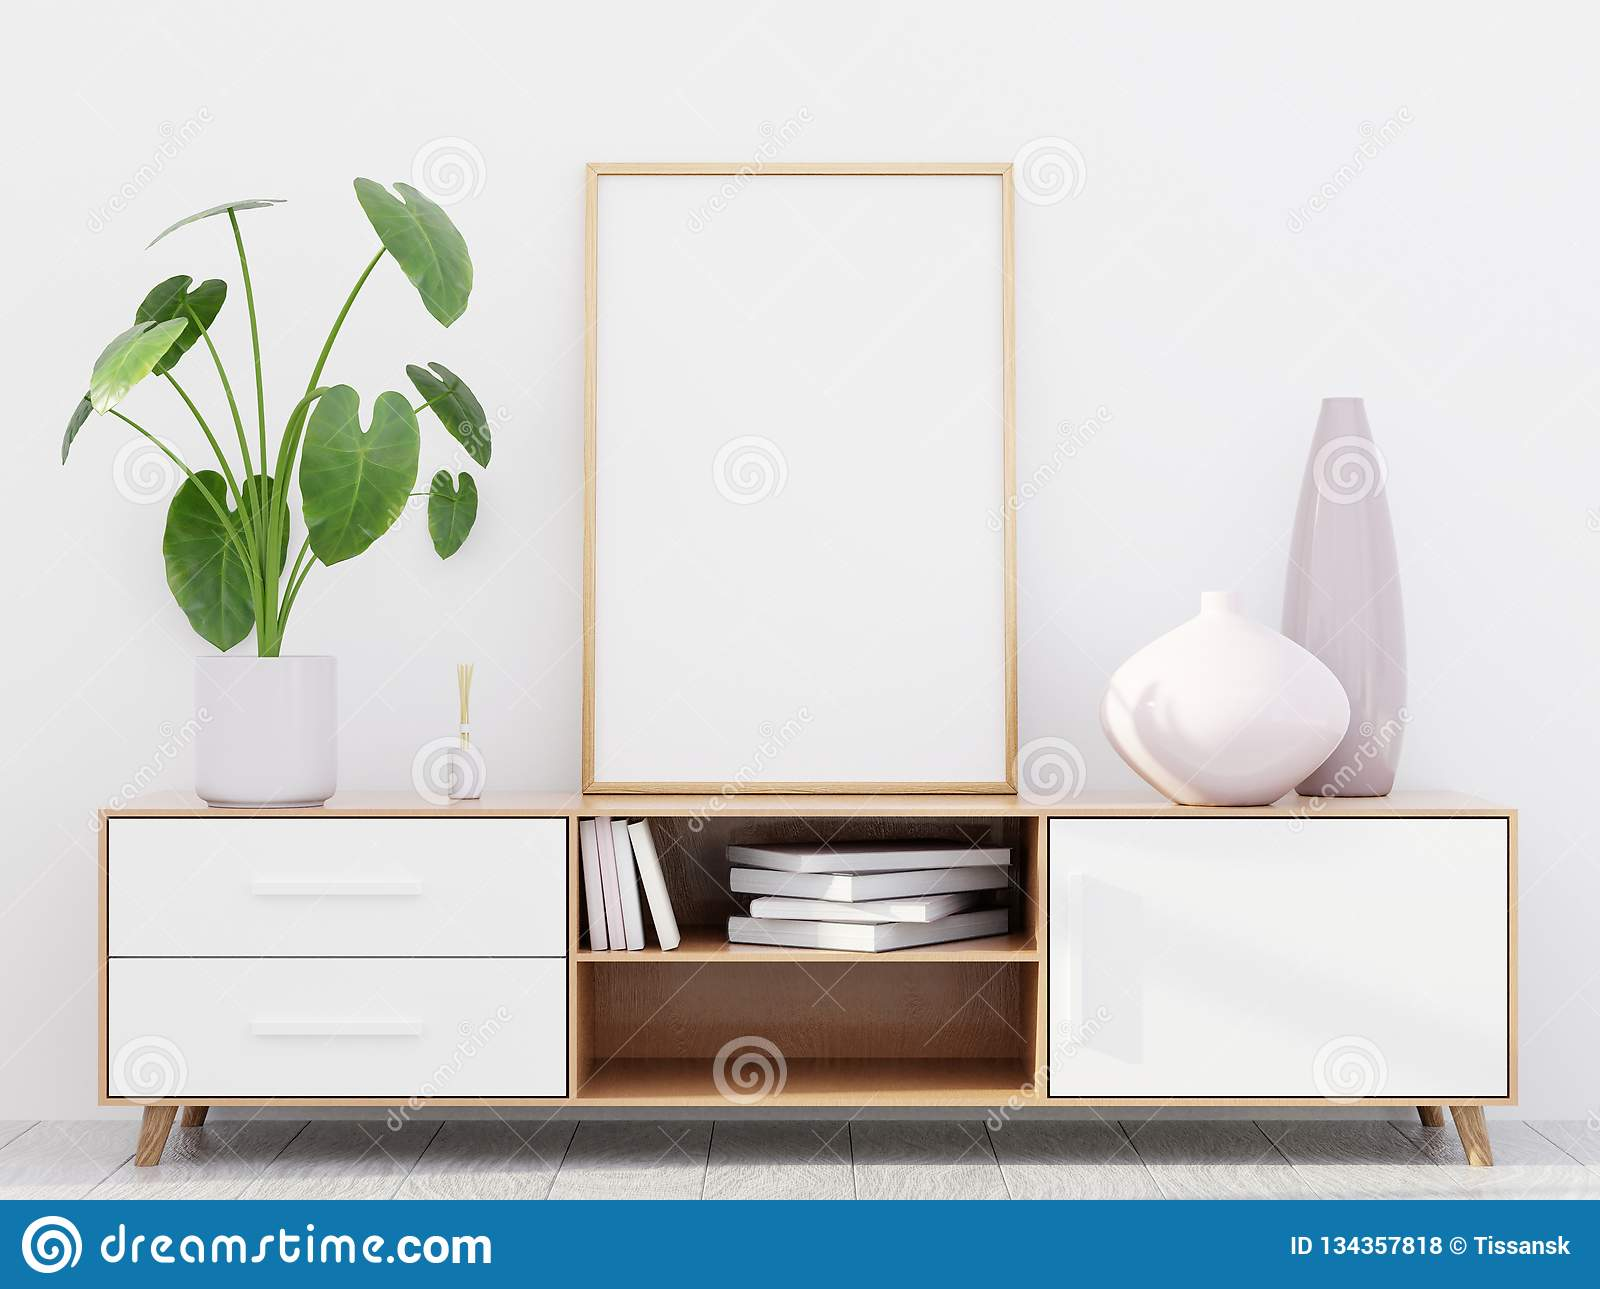 Modern living room interior with a wooden dresser and a poster mockup, 3D render